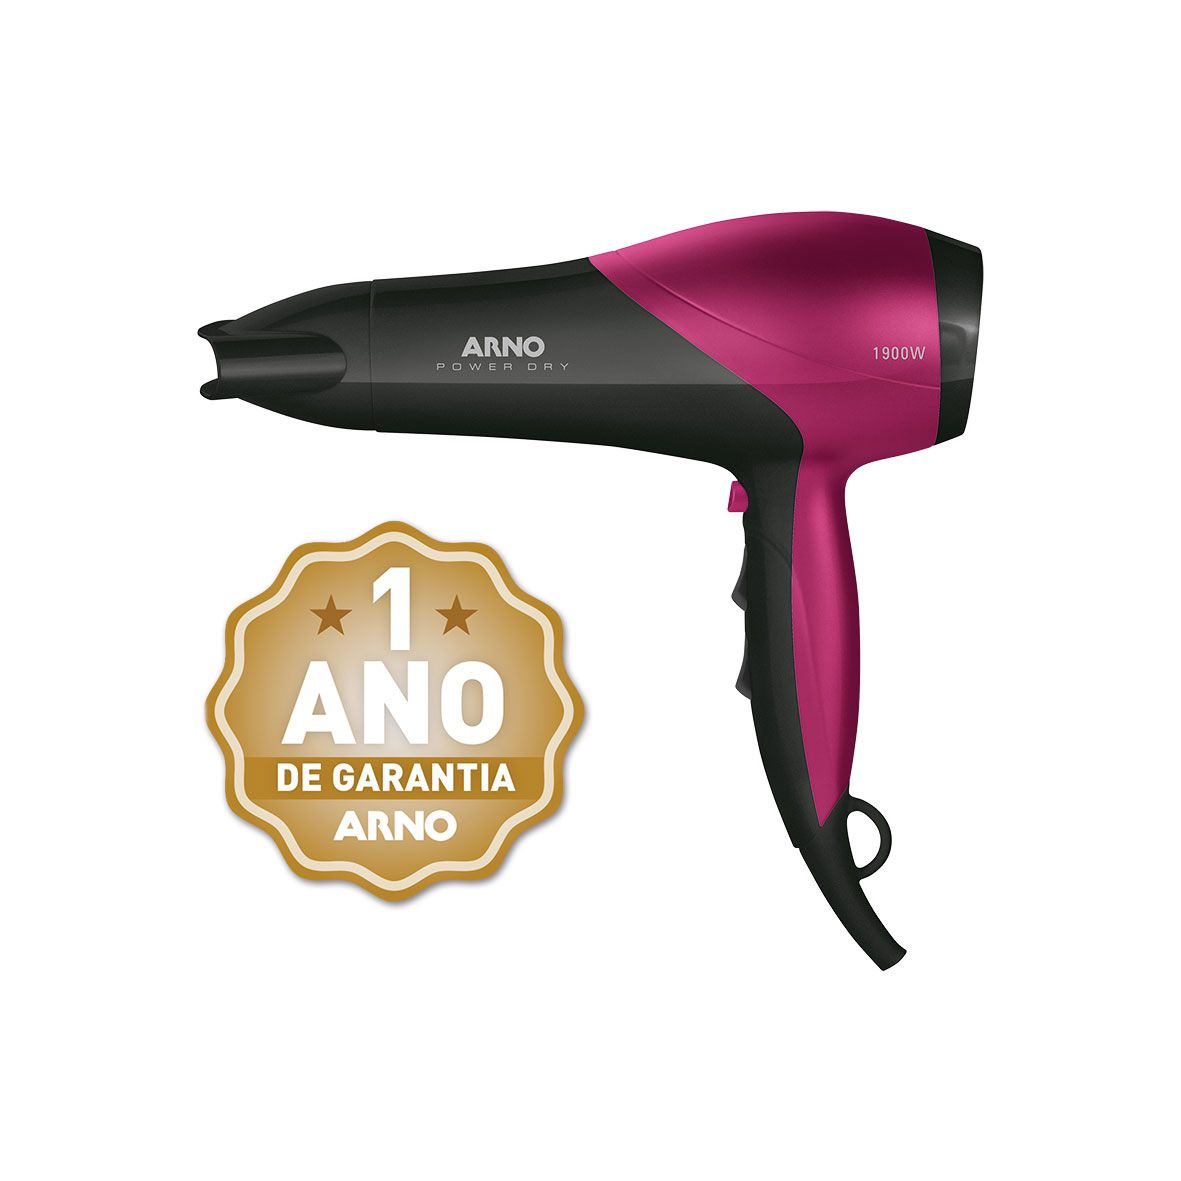 SECADOR ARNO PDRY POWER DRY 2100W